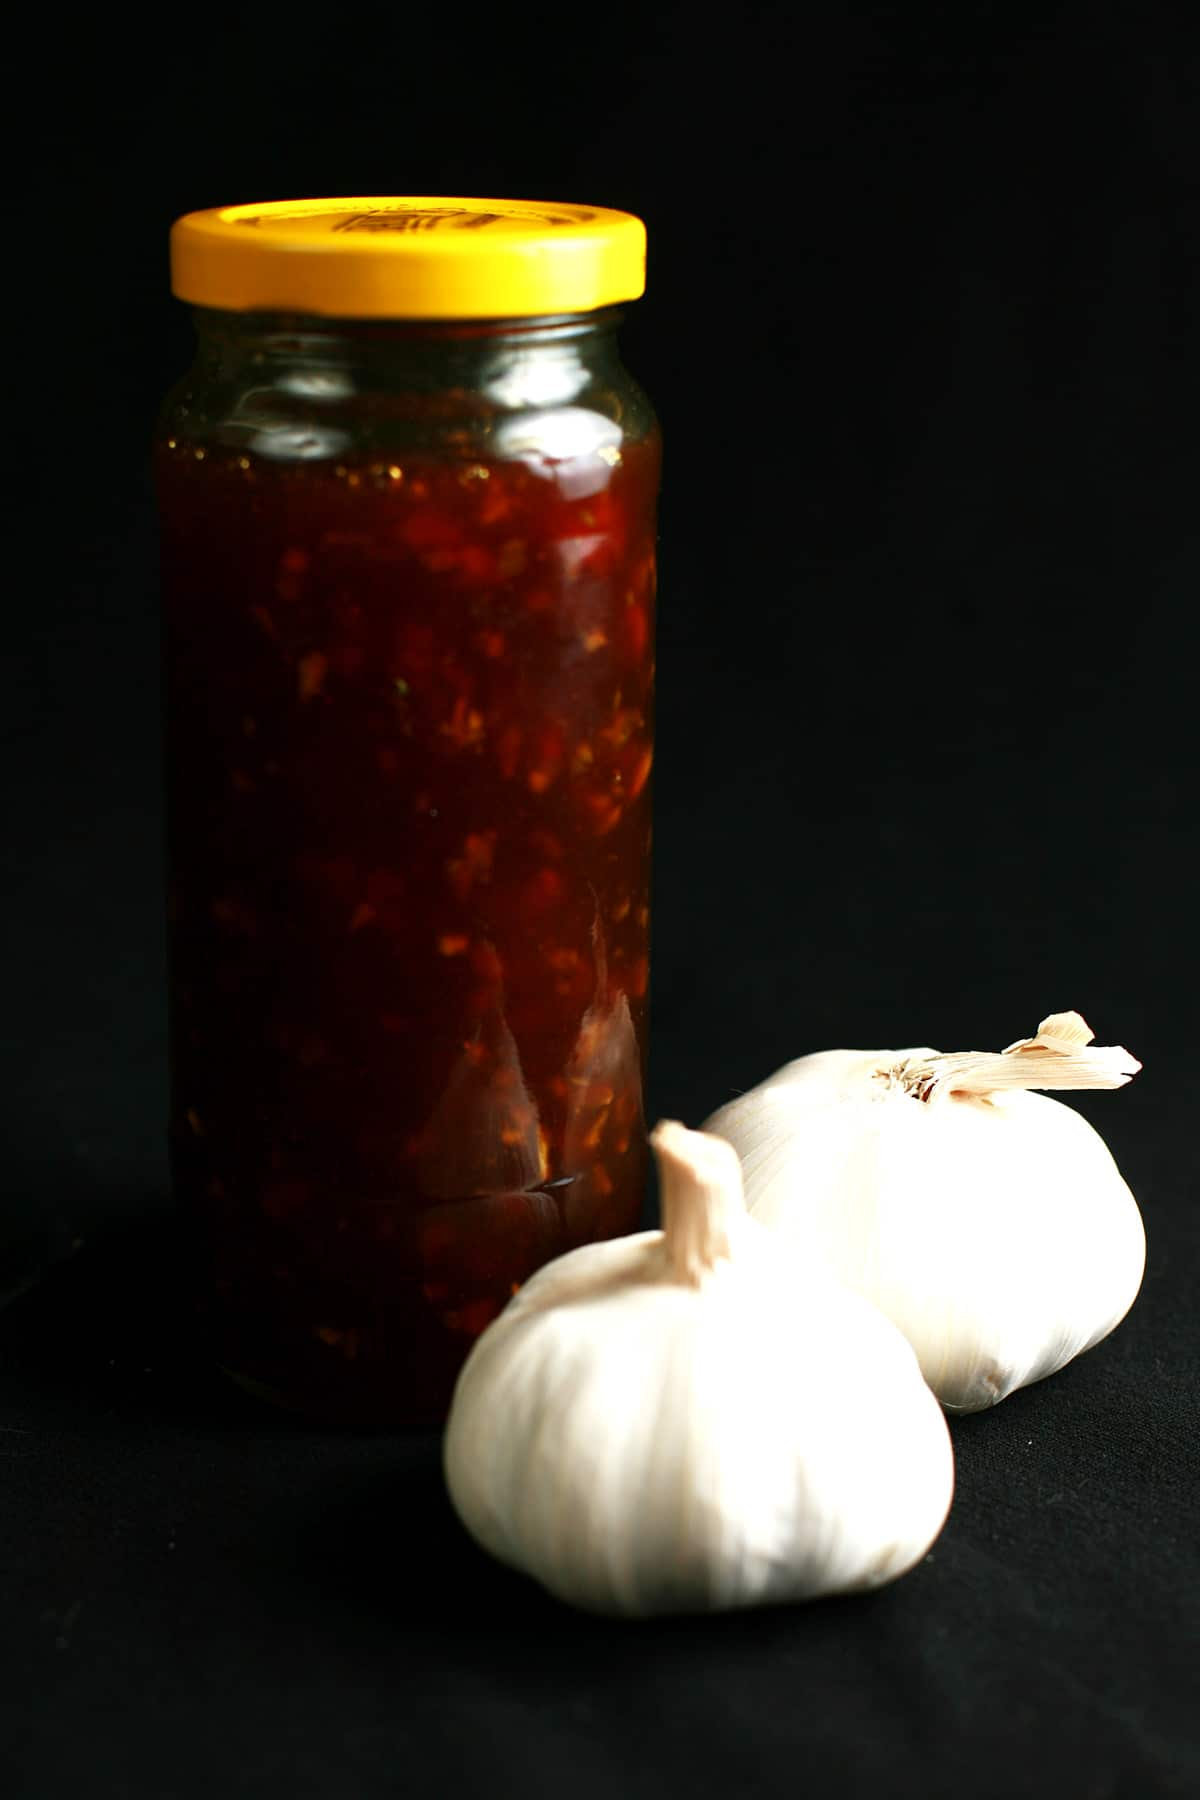 A tall, slender glass jar filled with homemade honey garlic sauce, a replica of the VH sauce. 2 whole bulbs of garlic rest at the base of the jar.